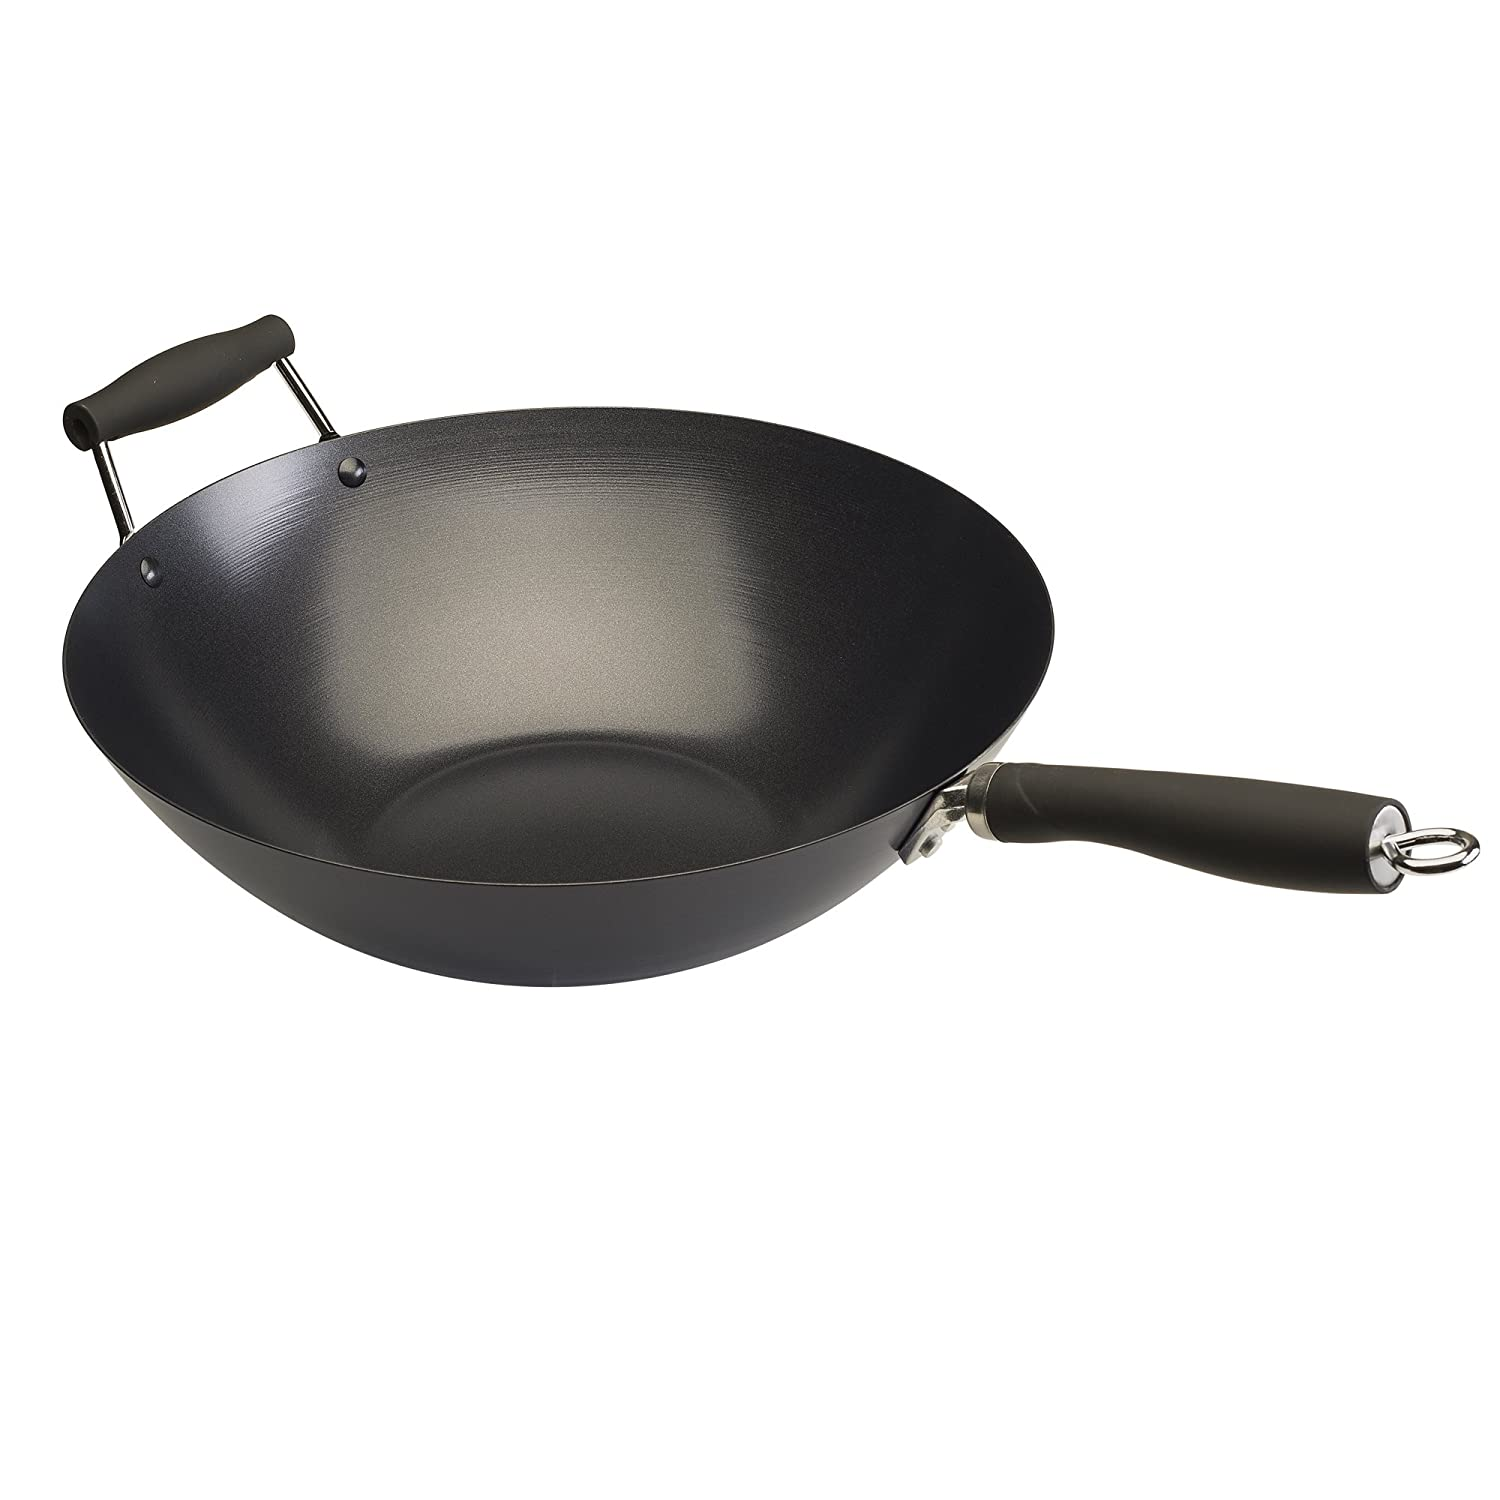 """Ecolution Non-Stick Carbon Steel Wok with Soft Touch Riveted Handles 14"""" Black Epoca Inc. EHKB-9136"""